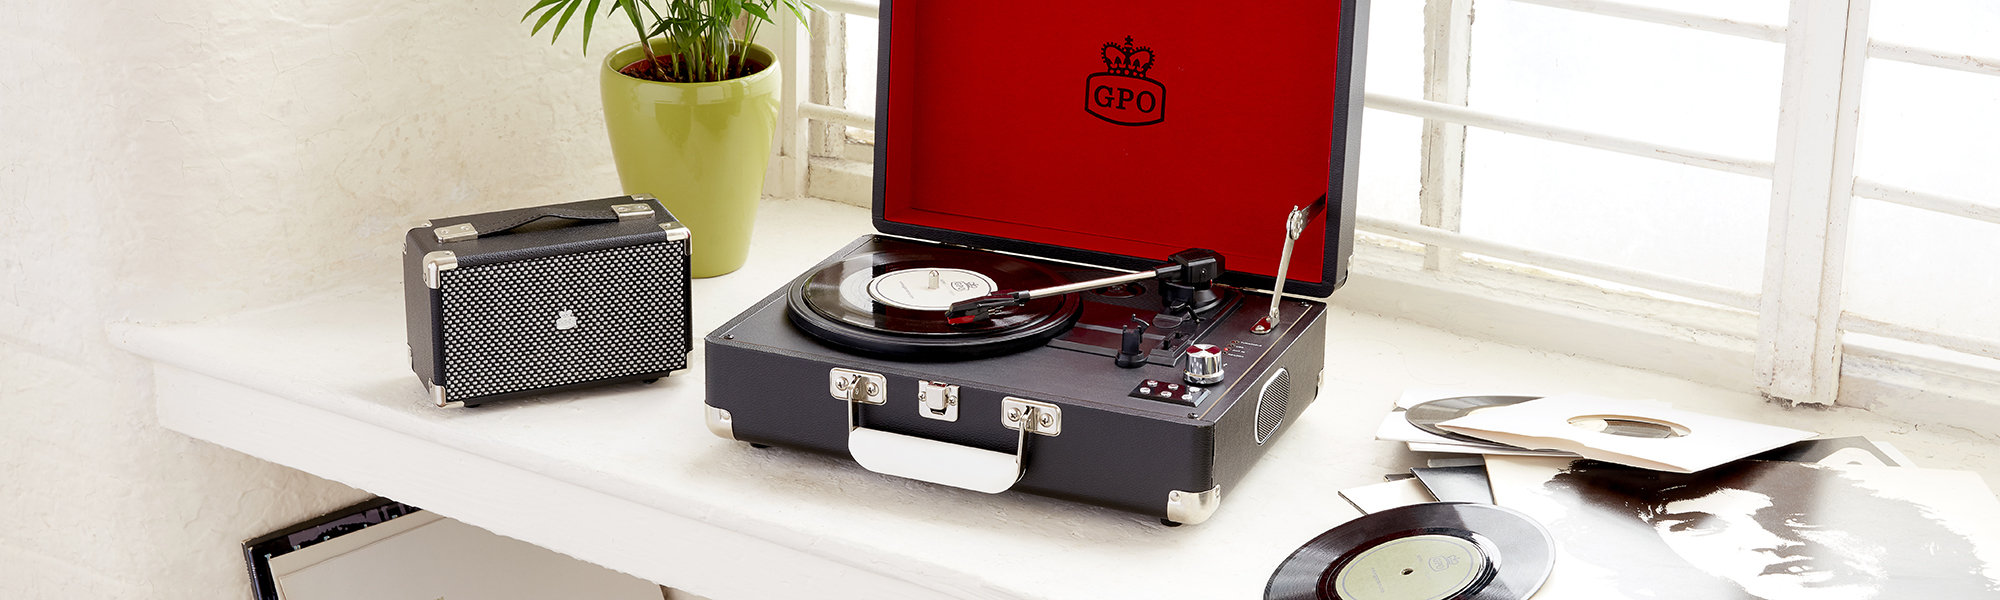 Record Player in Case | Briefcase Record Player | Case Record Players